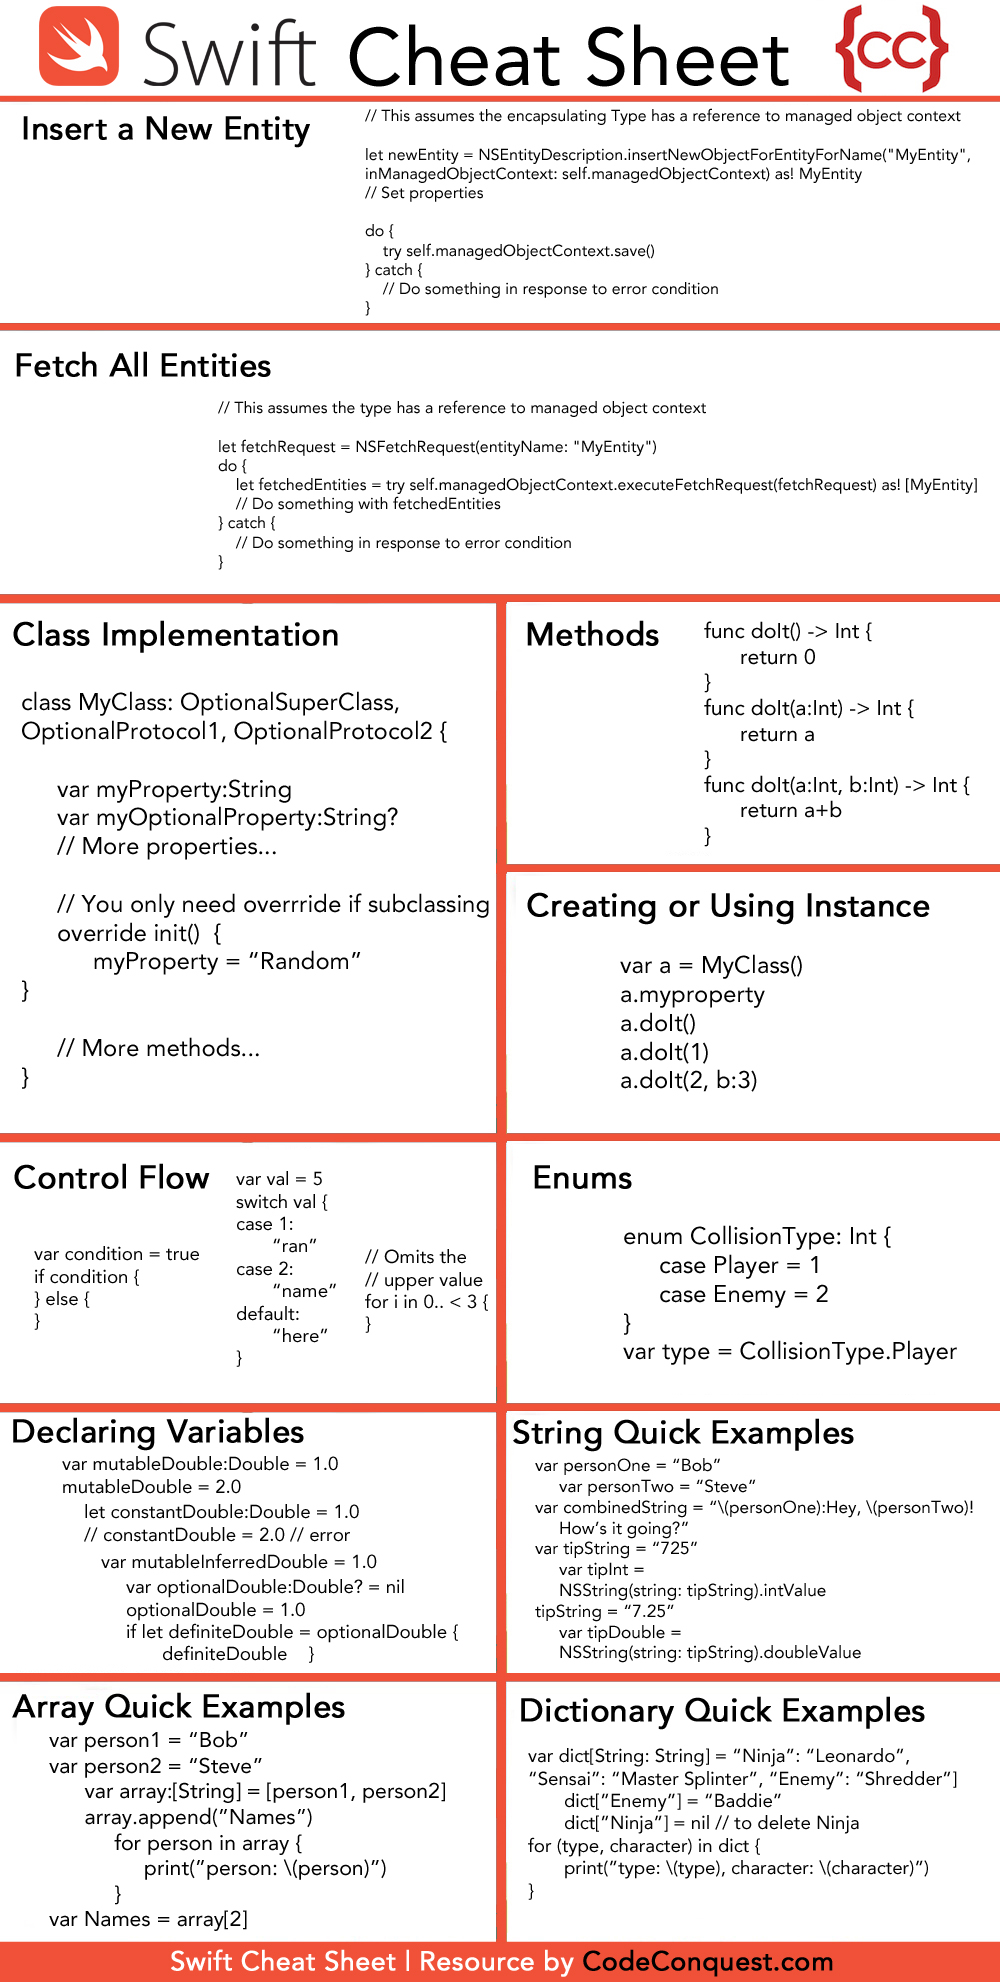 Swift Cheat Sheet by CodeConquestDOTcom